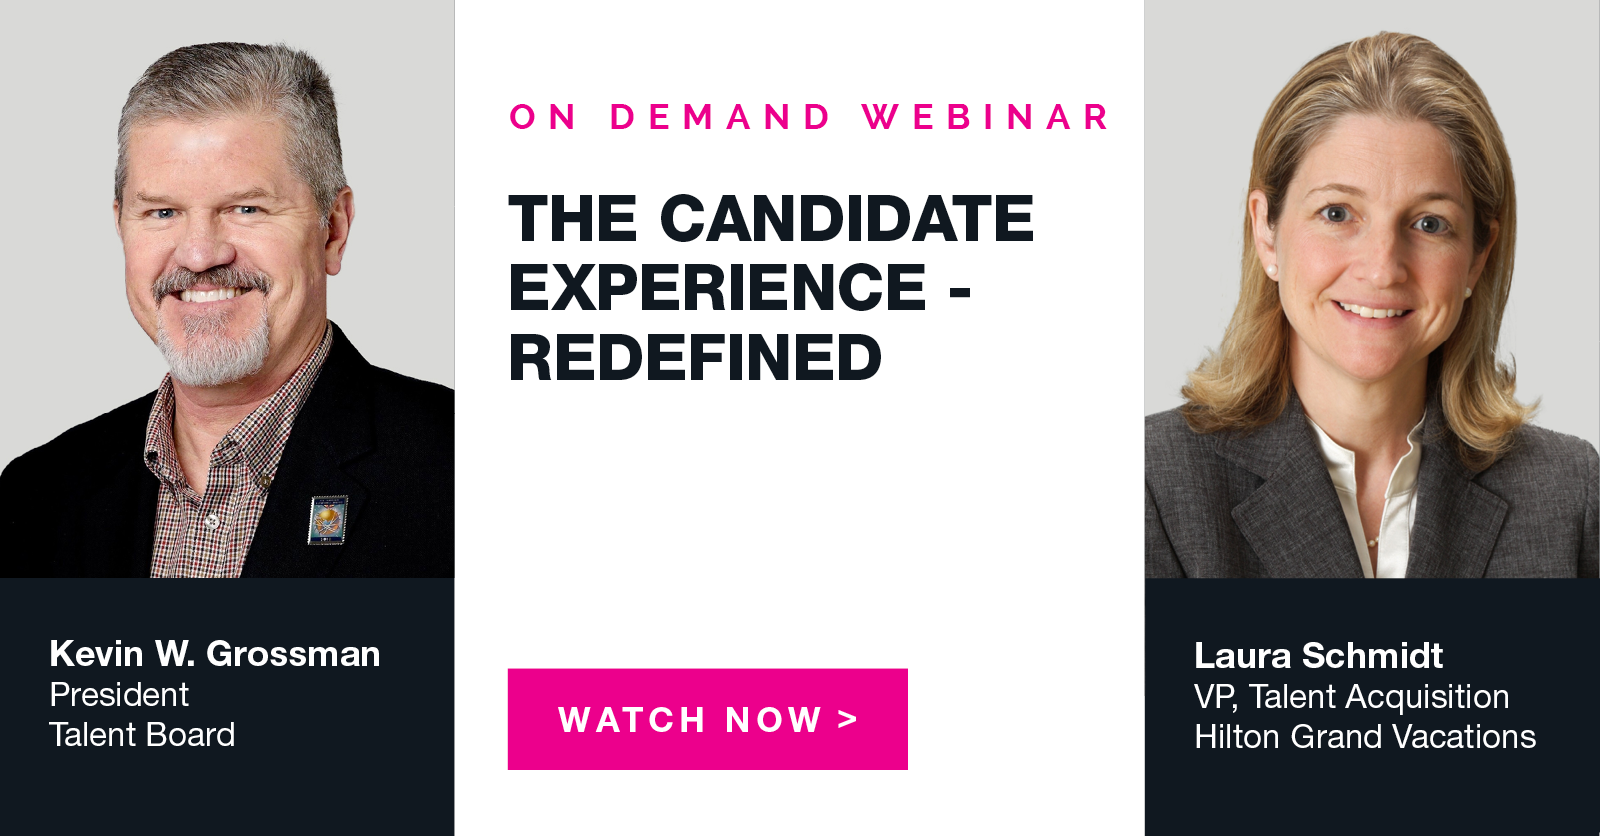 ST Webinar On Demand - The Candidate Experience - Redefined